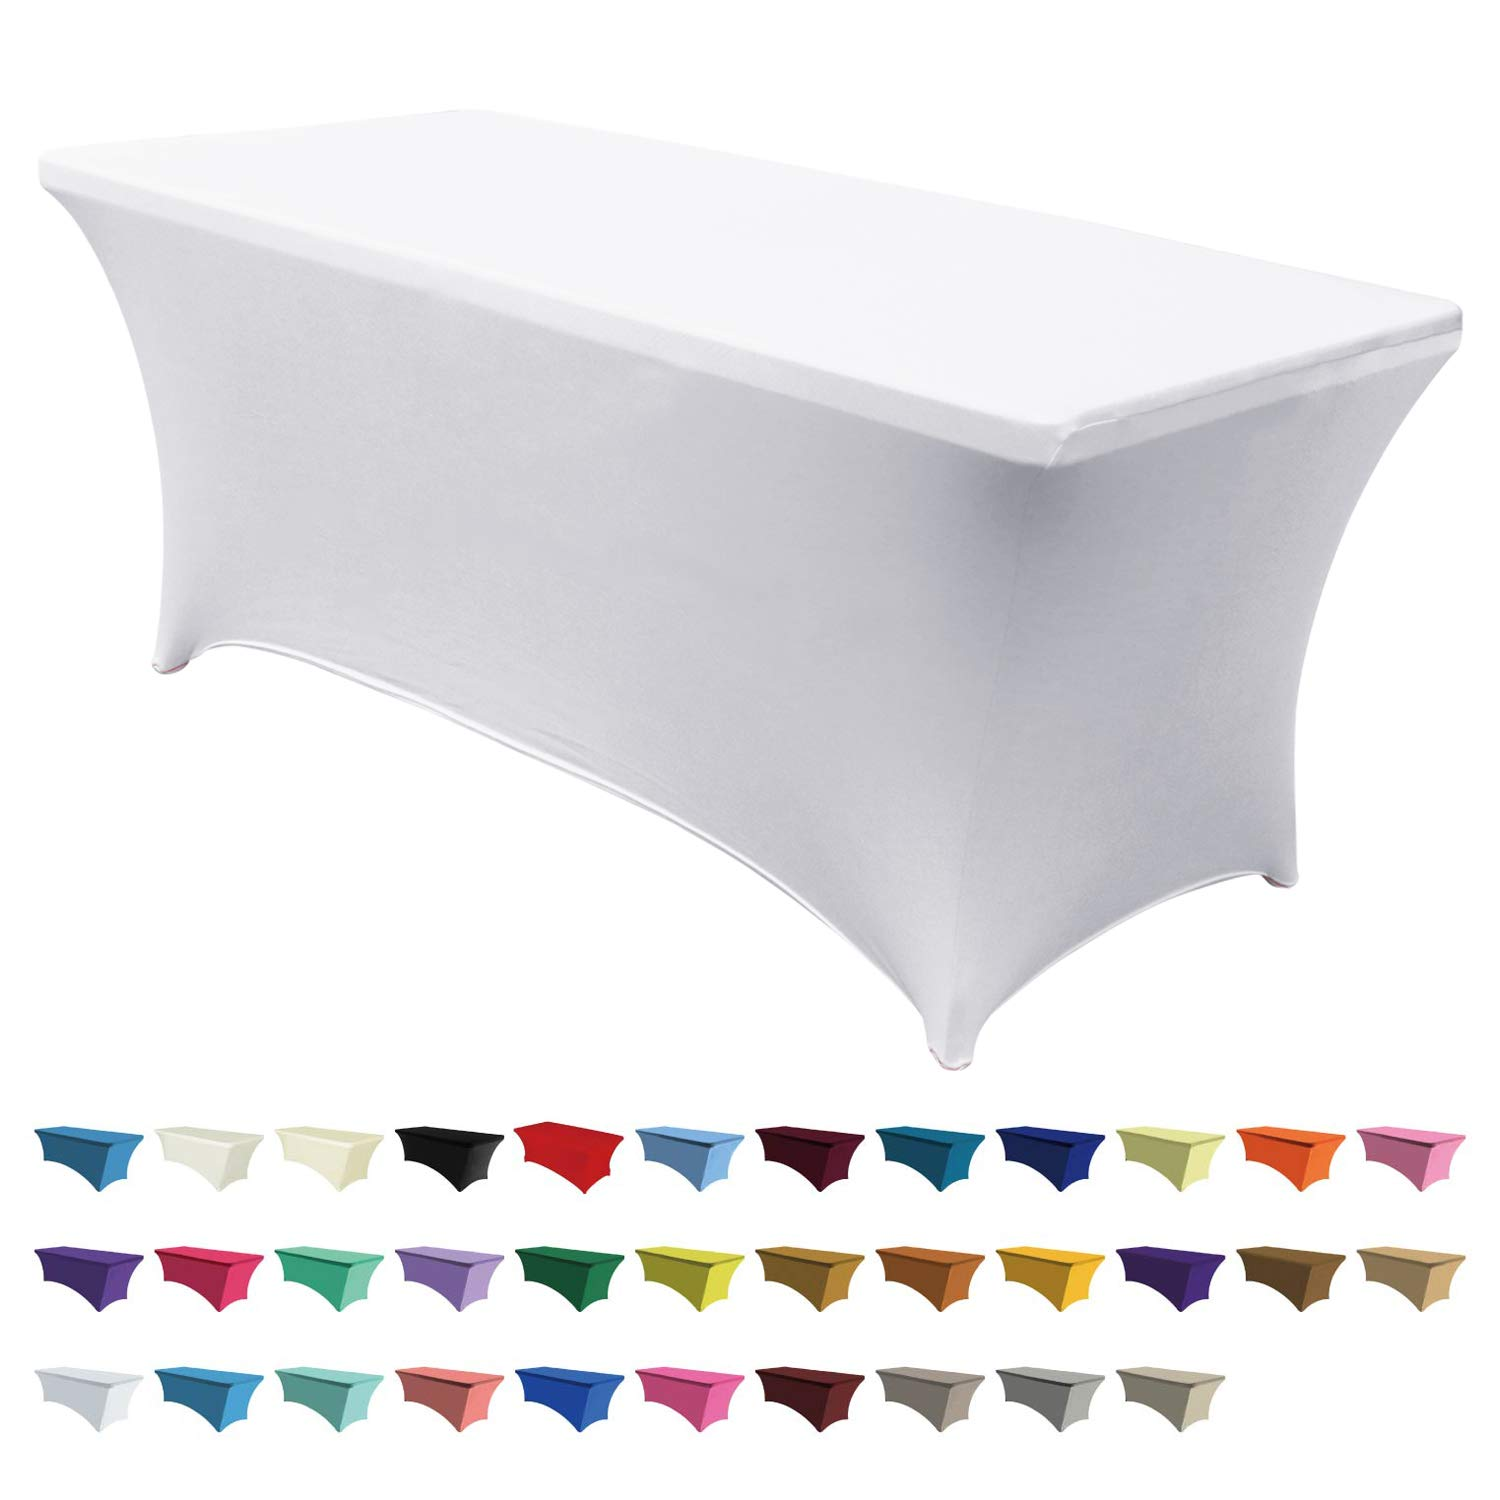 "ABCCANOPY Spandex Table Cover 8 ft. Fitted Polyester Tablecloth Stretch Spandex Table Cover-Table Toppers White, 96"" L x 30"" W x 30"" H"